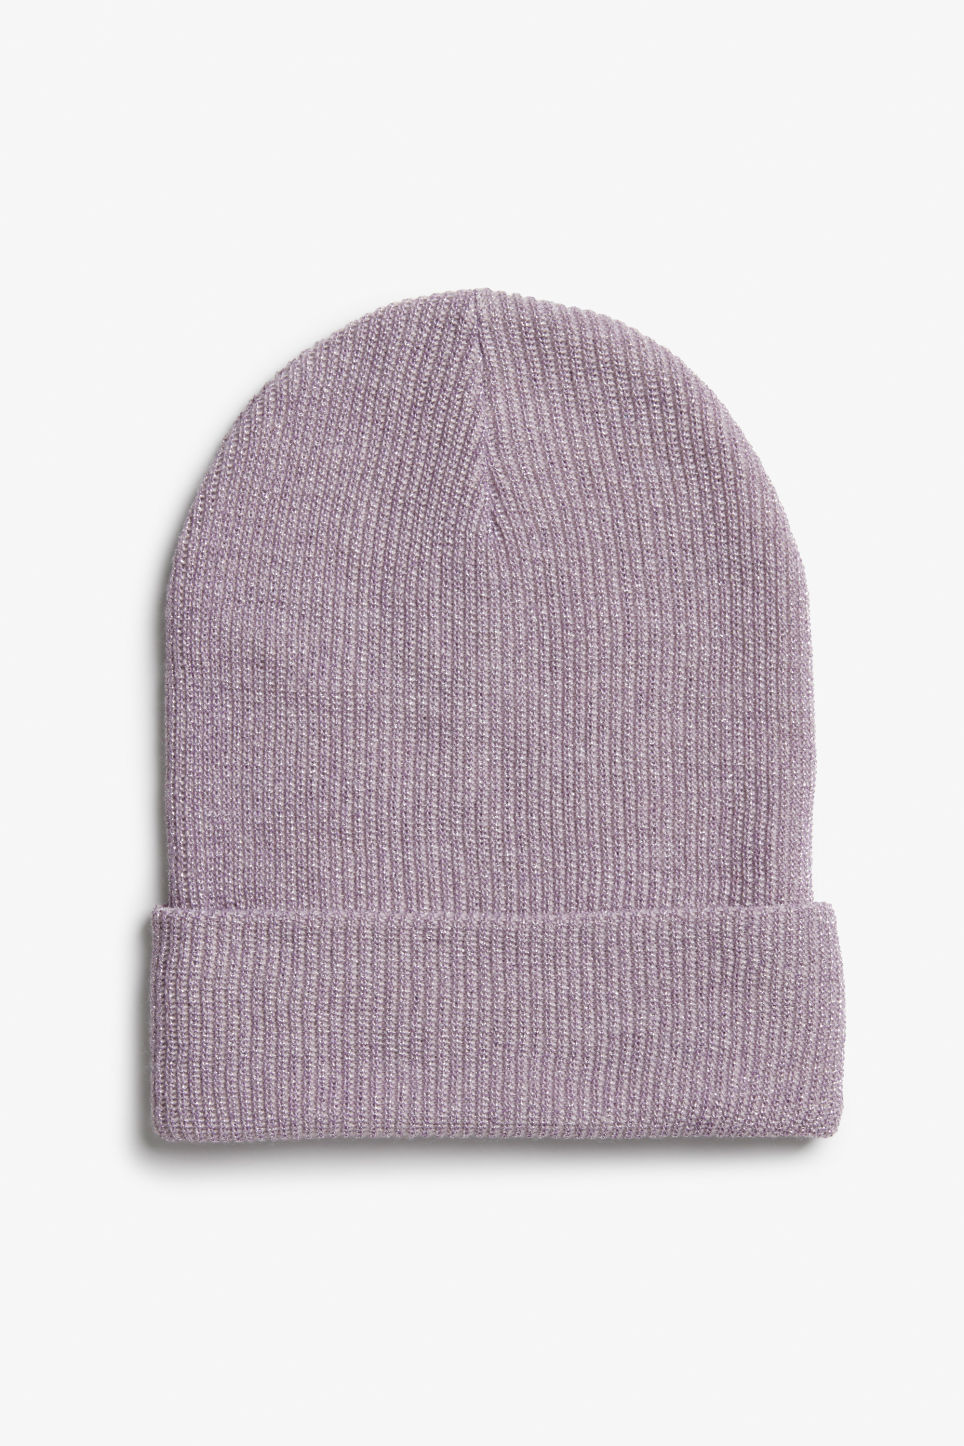 5f9fb88ae3b Sparkle beanie - northern lights lilac - Hats